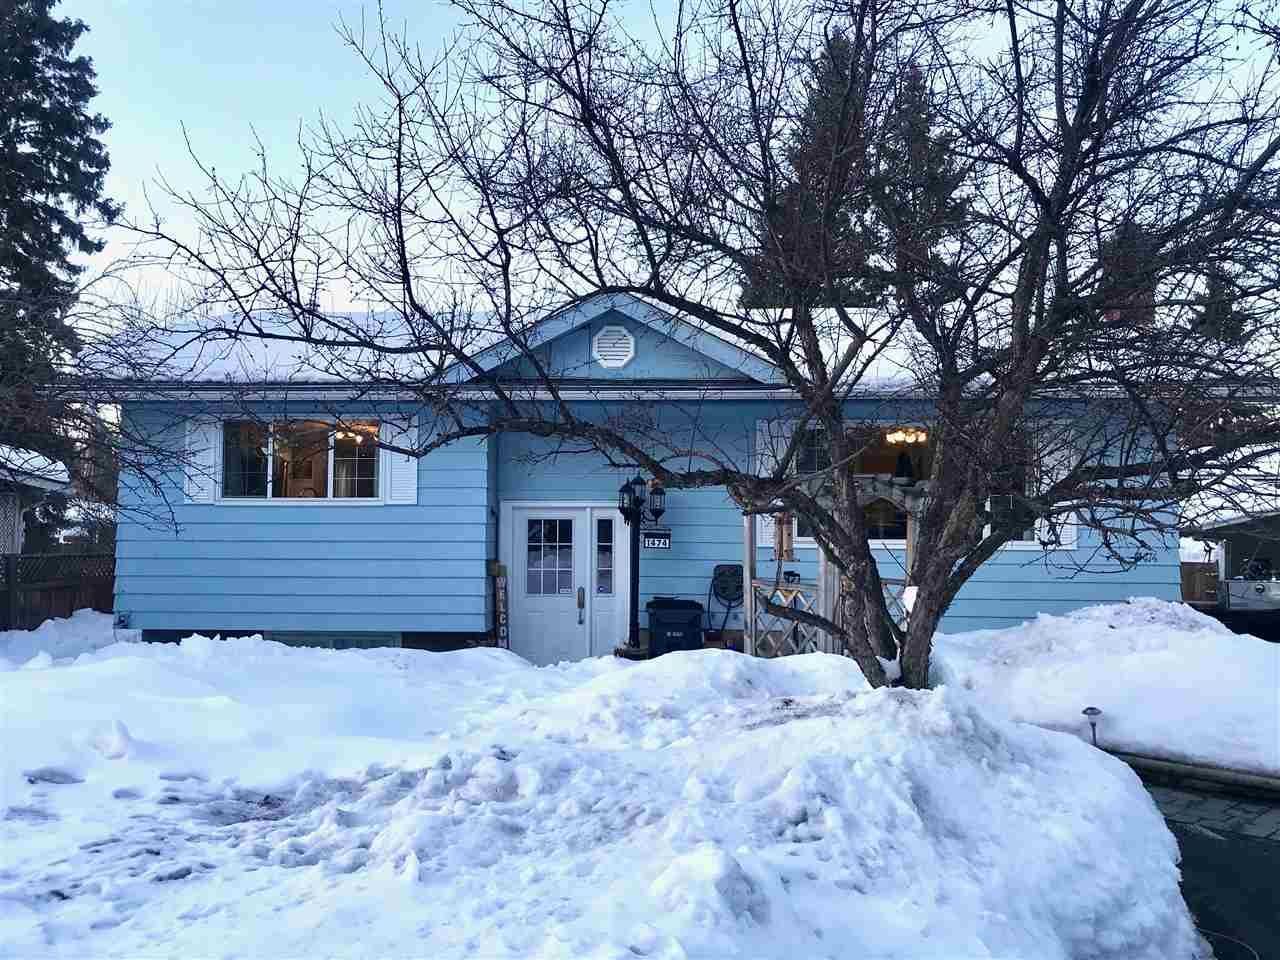 Main Photo: 1474 WARNER Avenue in Prince George: Fraserview House for sale (PG City West (Zone 71))  : MLS®# R2245933